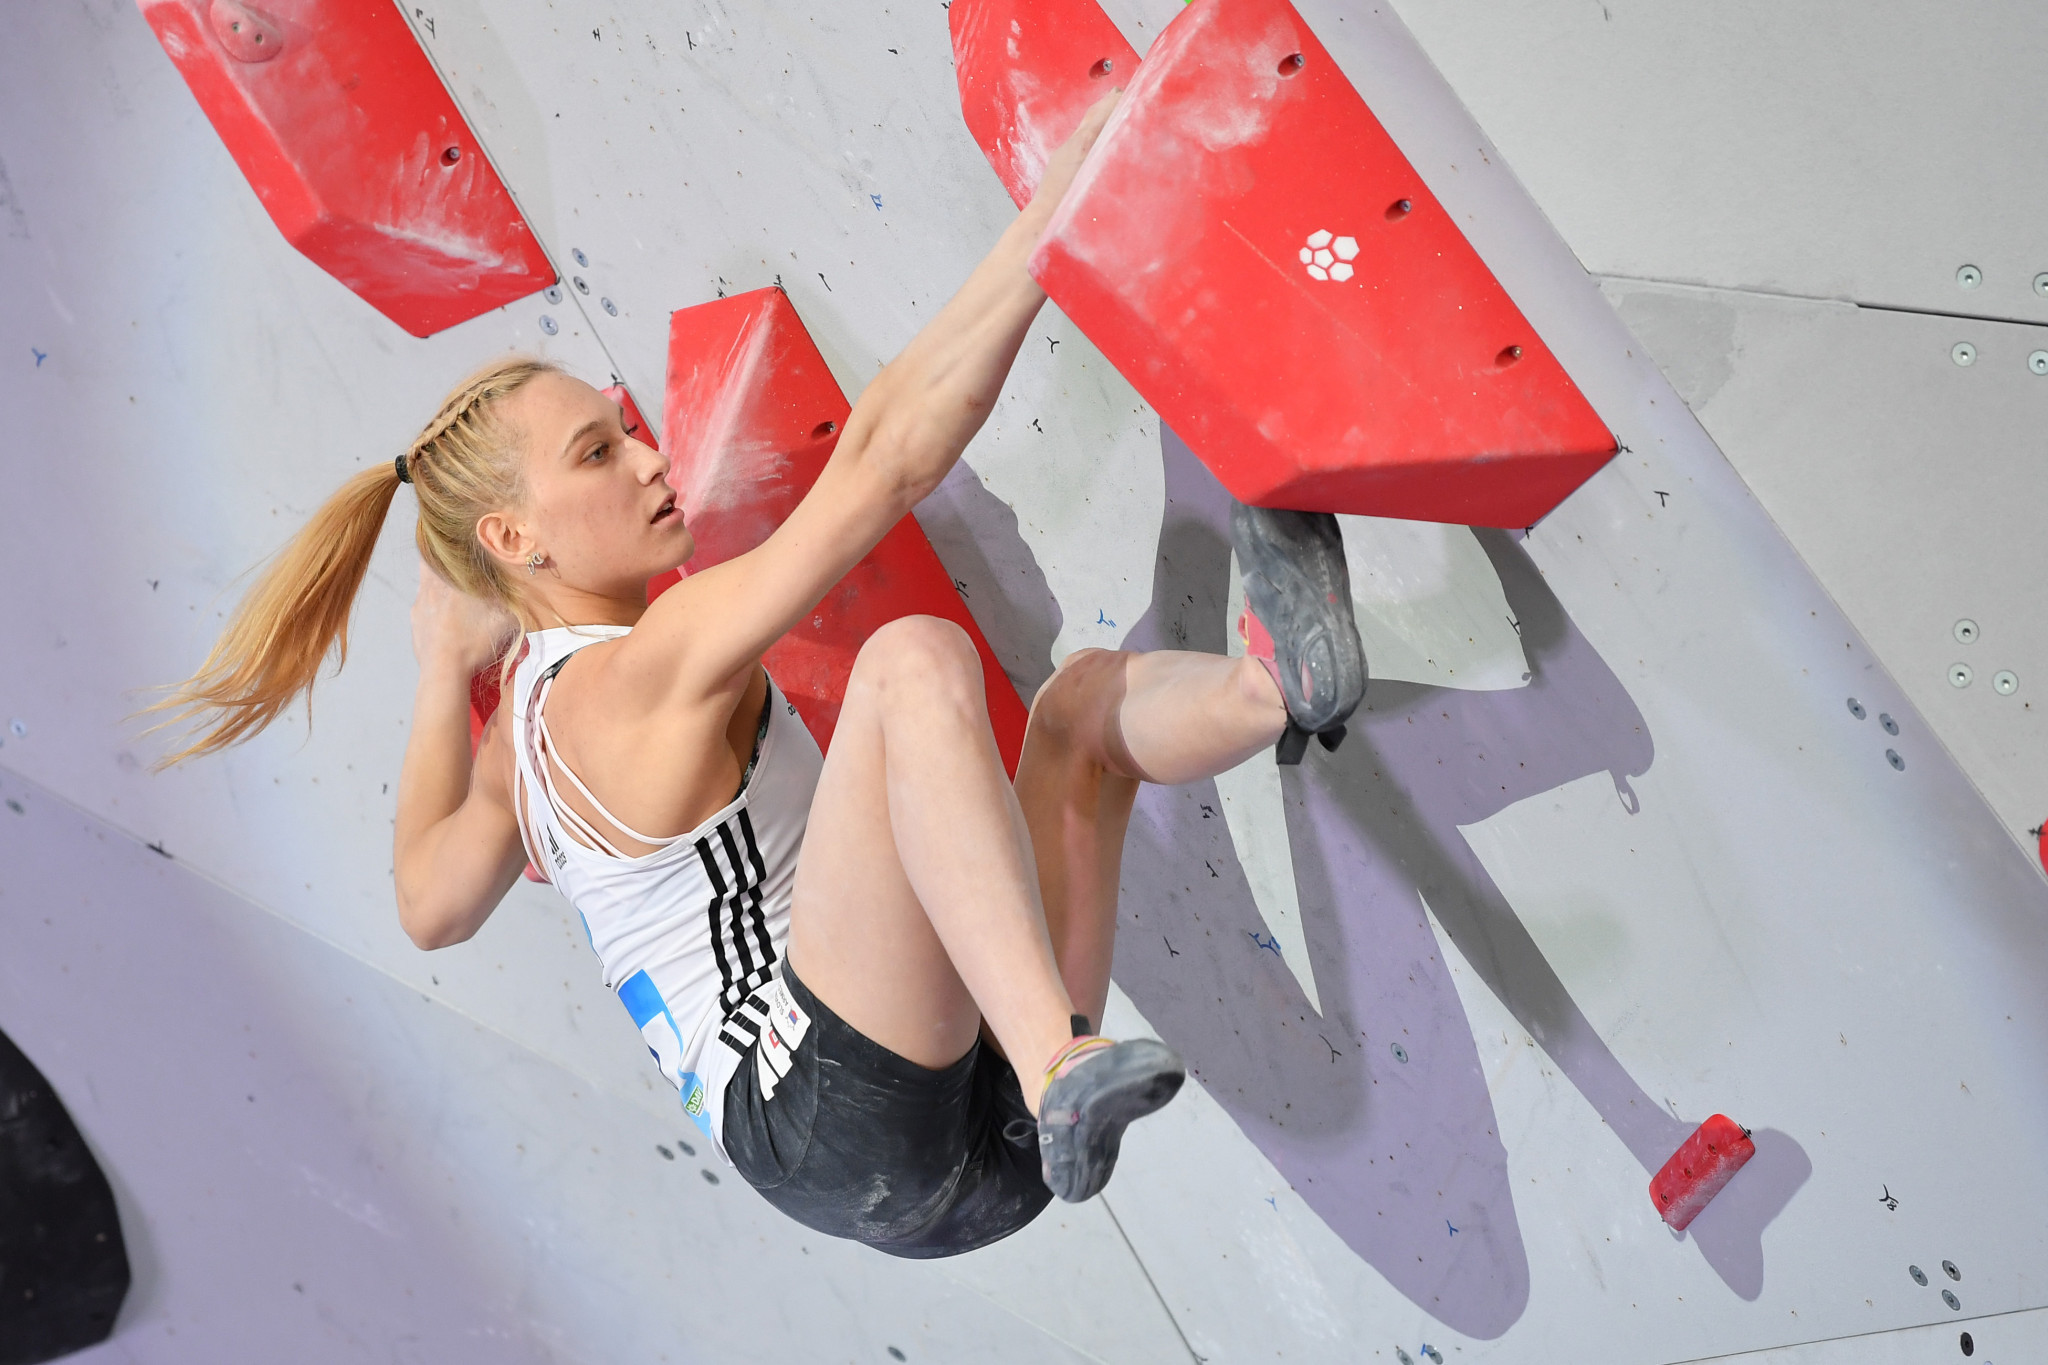 Janja Garnbret of Slovenia will aim to defend her bouldering and combined titles ©Getty Images